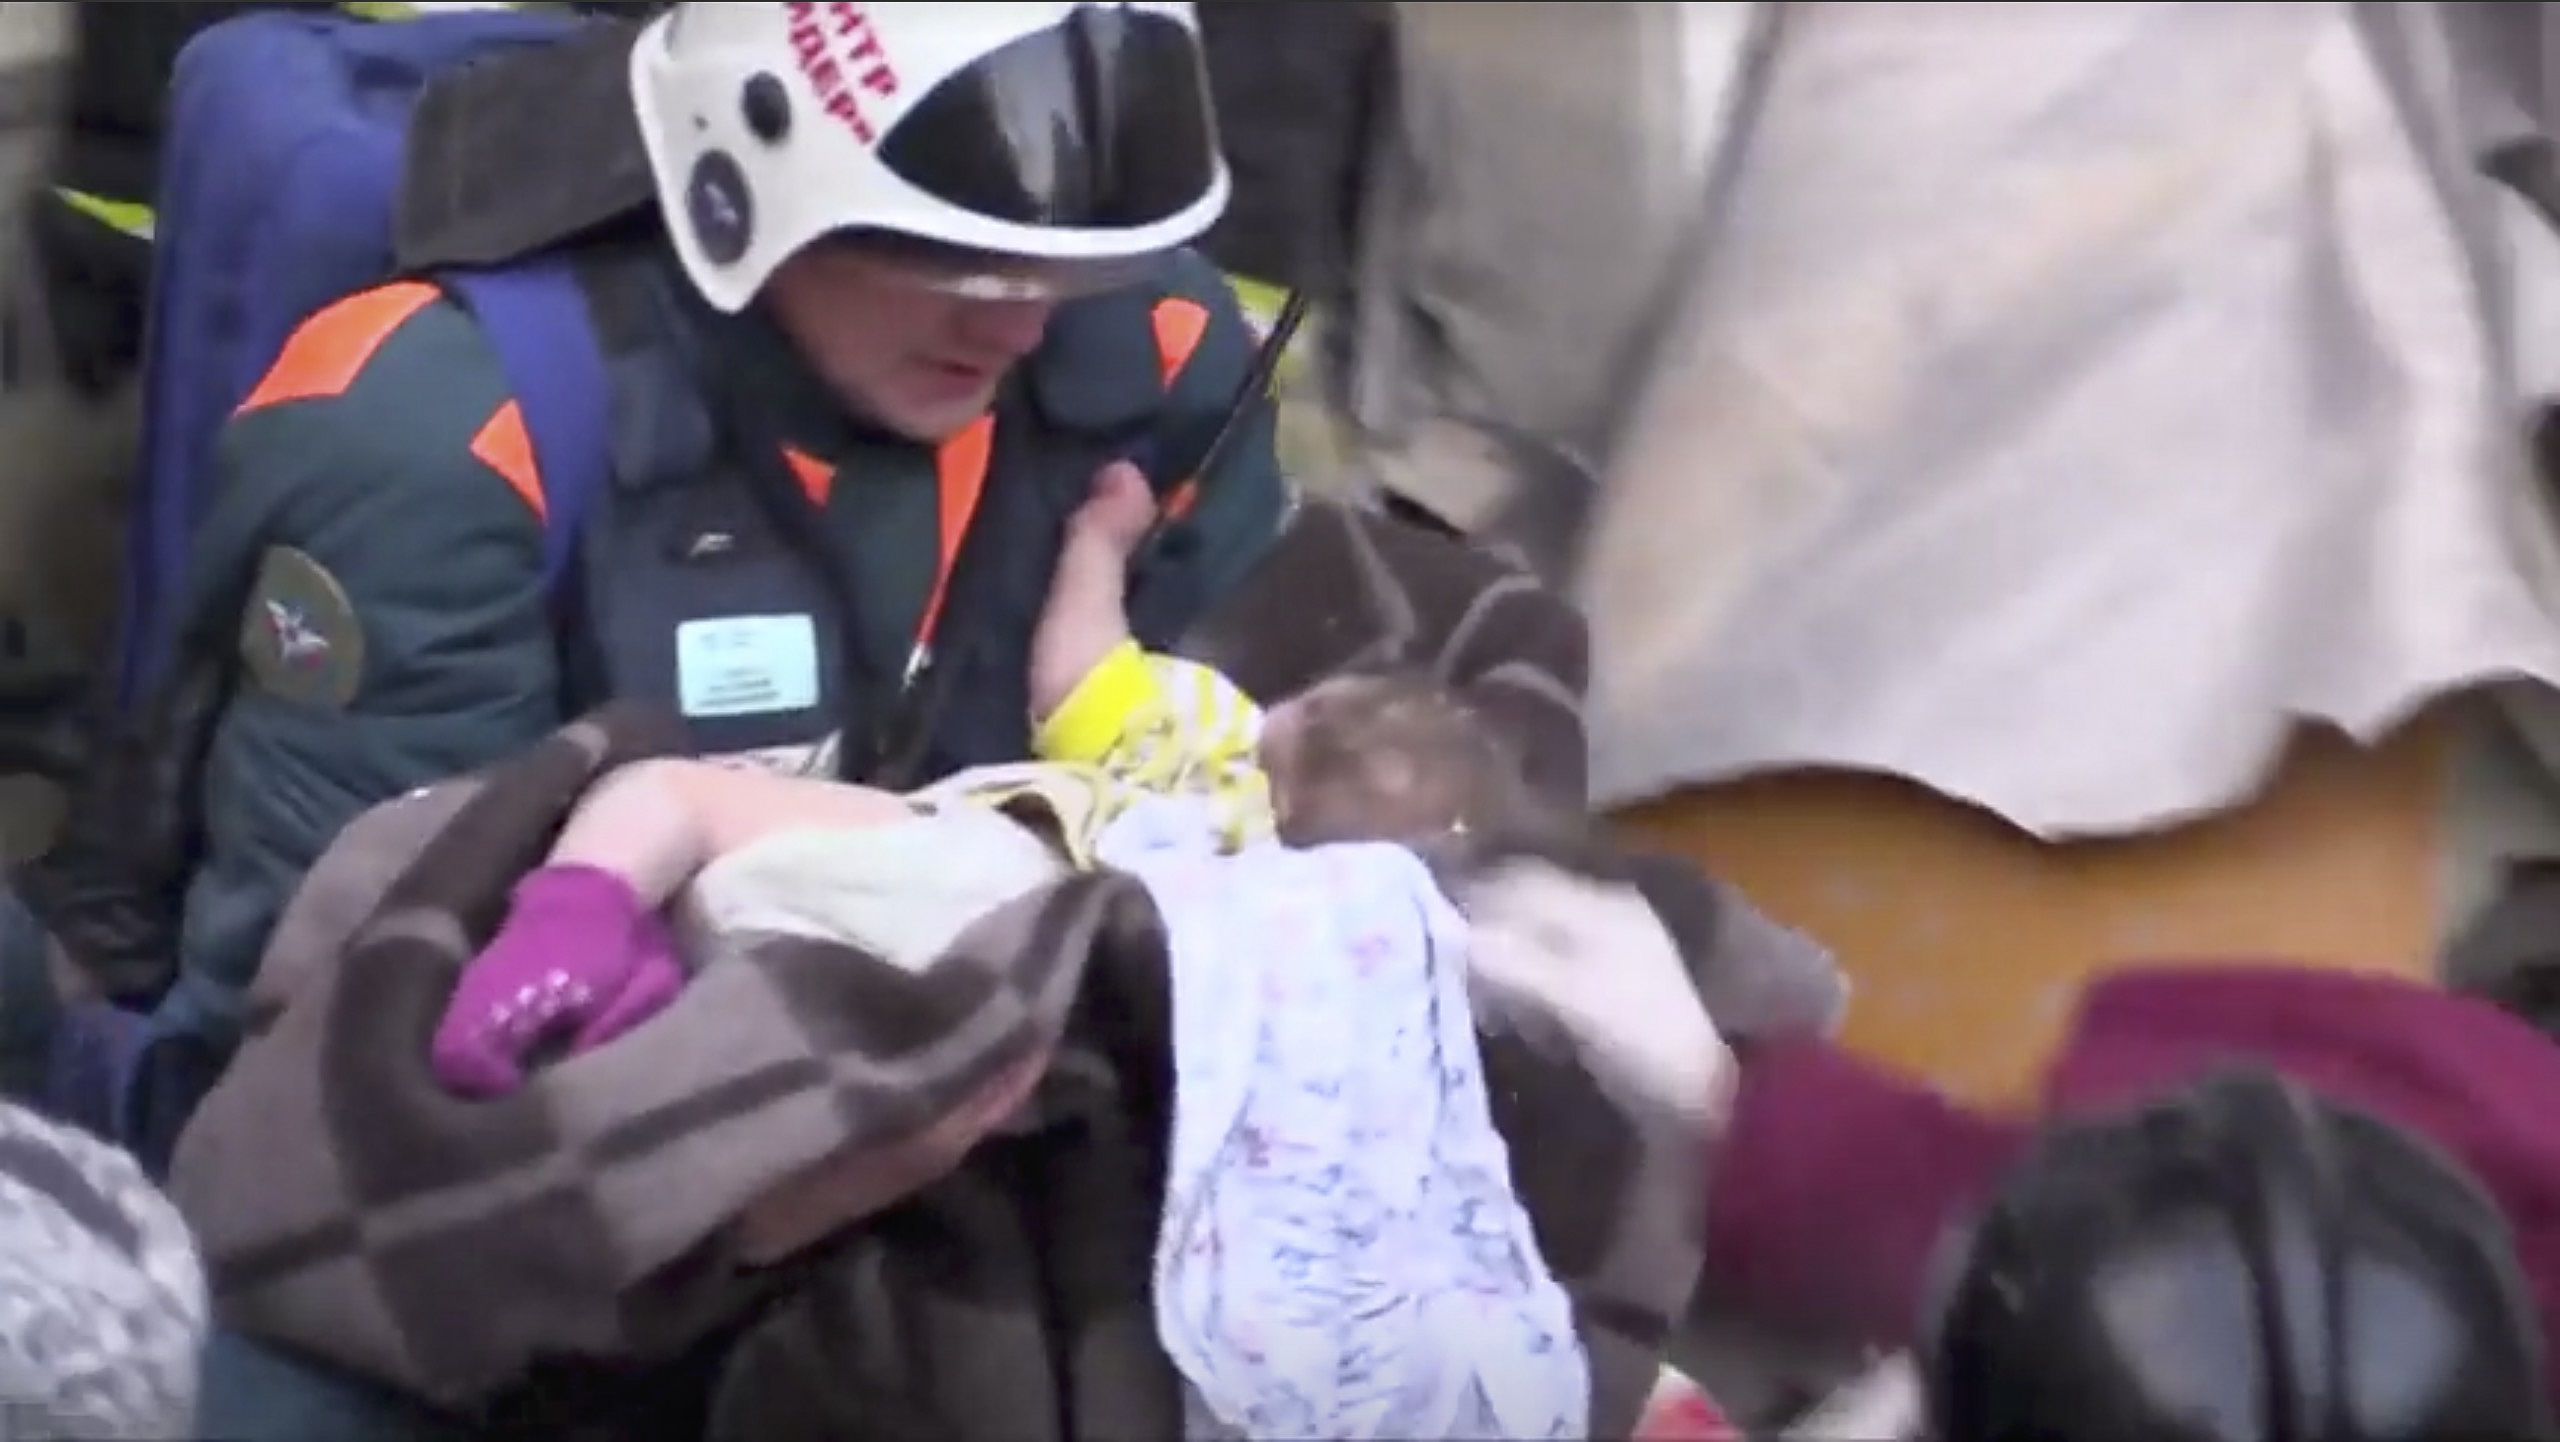 Baby boy found alive after 35 hours under rubble after Russia blast